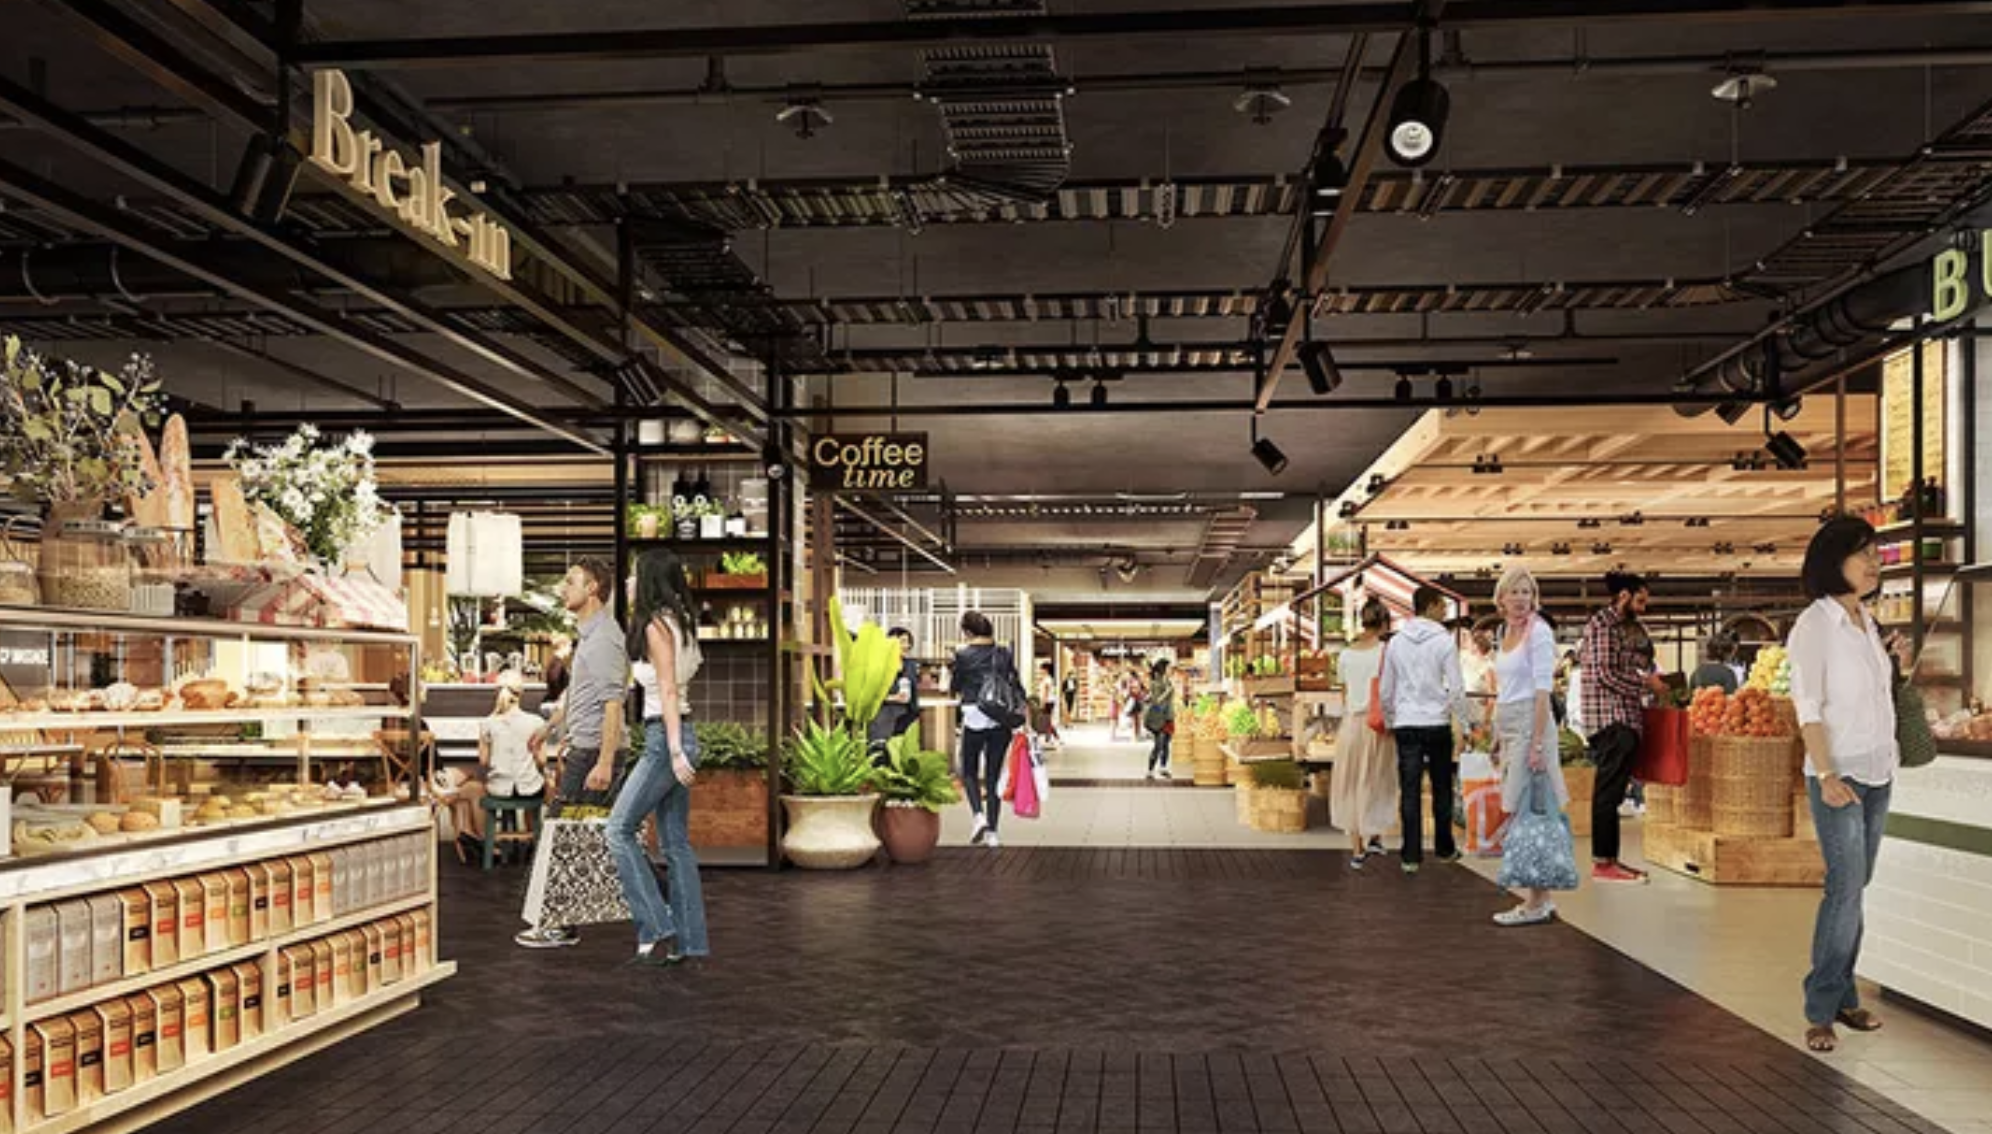 Vicinity announced in August it will spend million $90 million revamping Roselands Shopping Centre in Sydney's west.